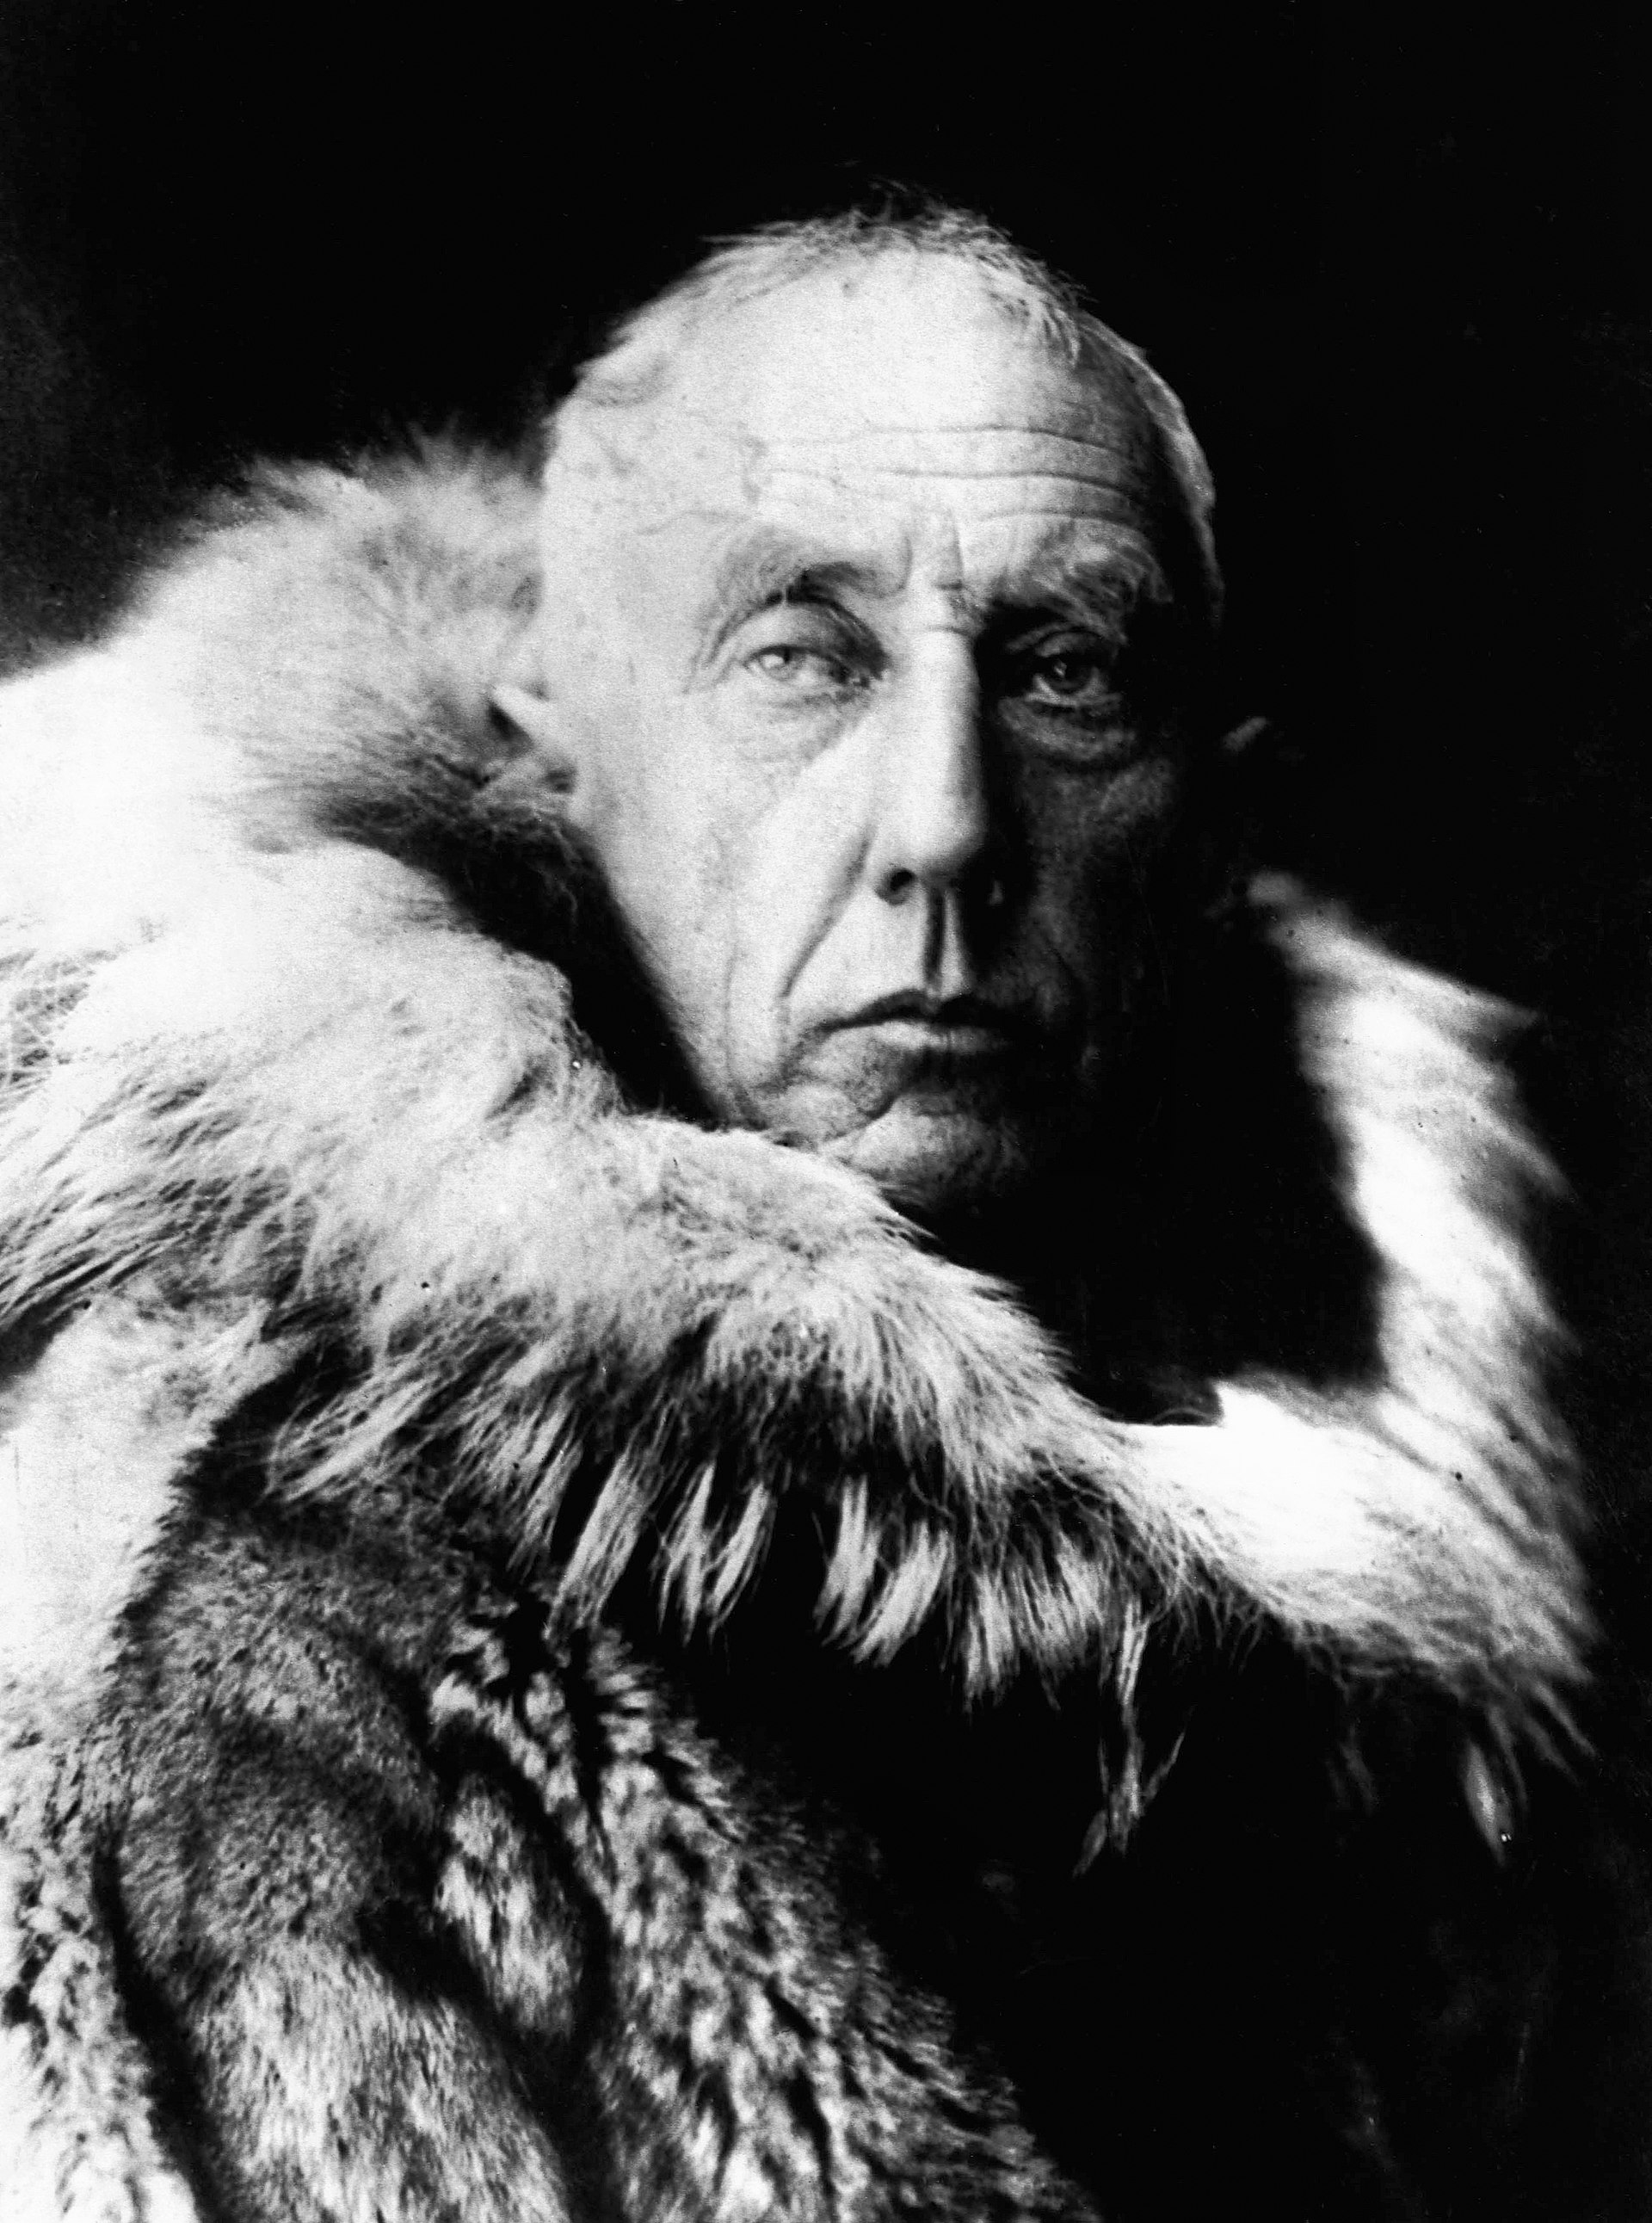 Amundsen's face in a black and white photo